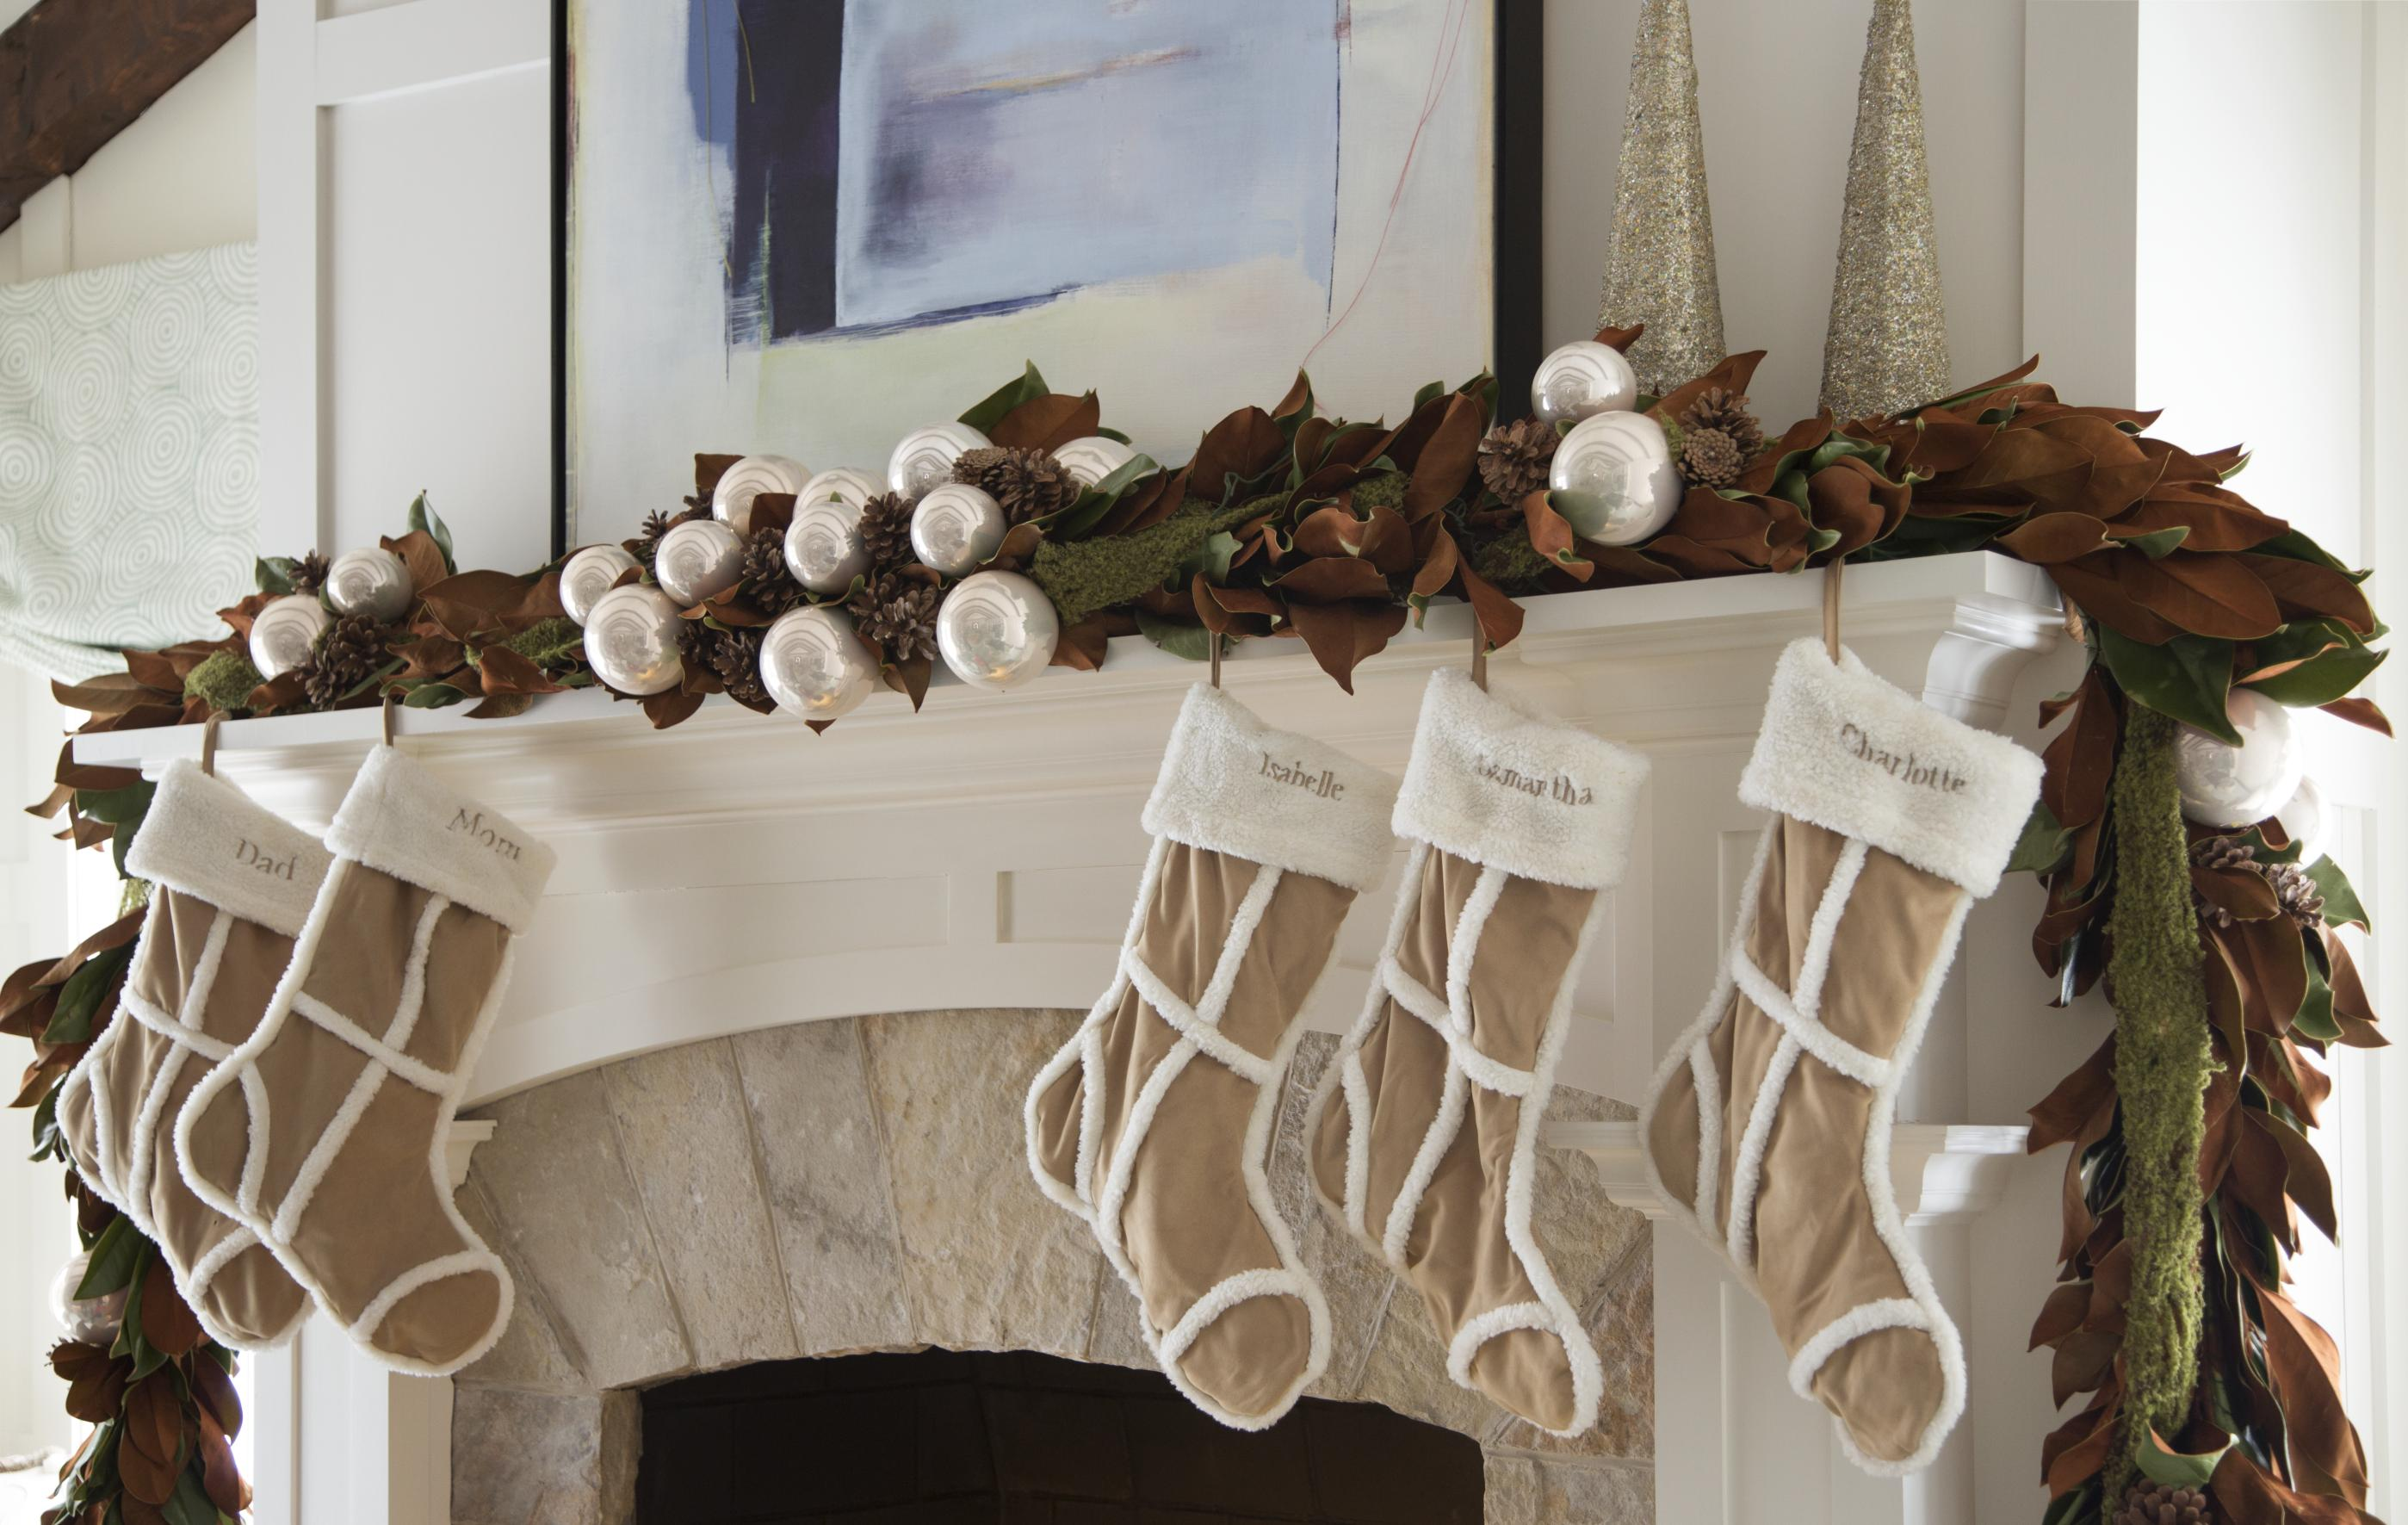 enlarge - How To Decorate A Fireplace Mantel For Christmas